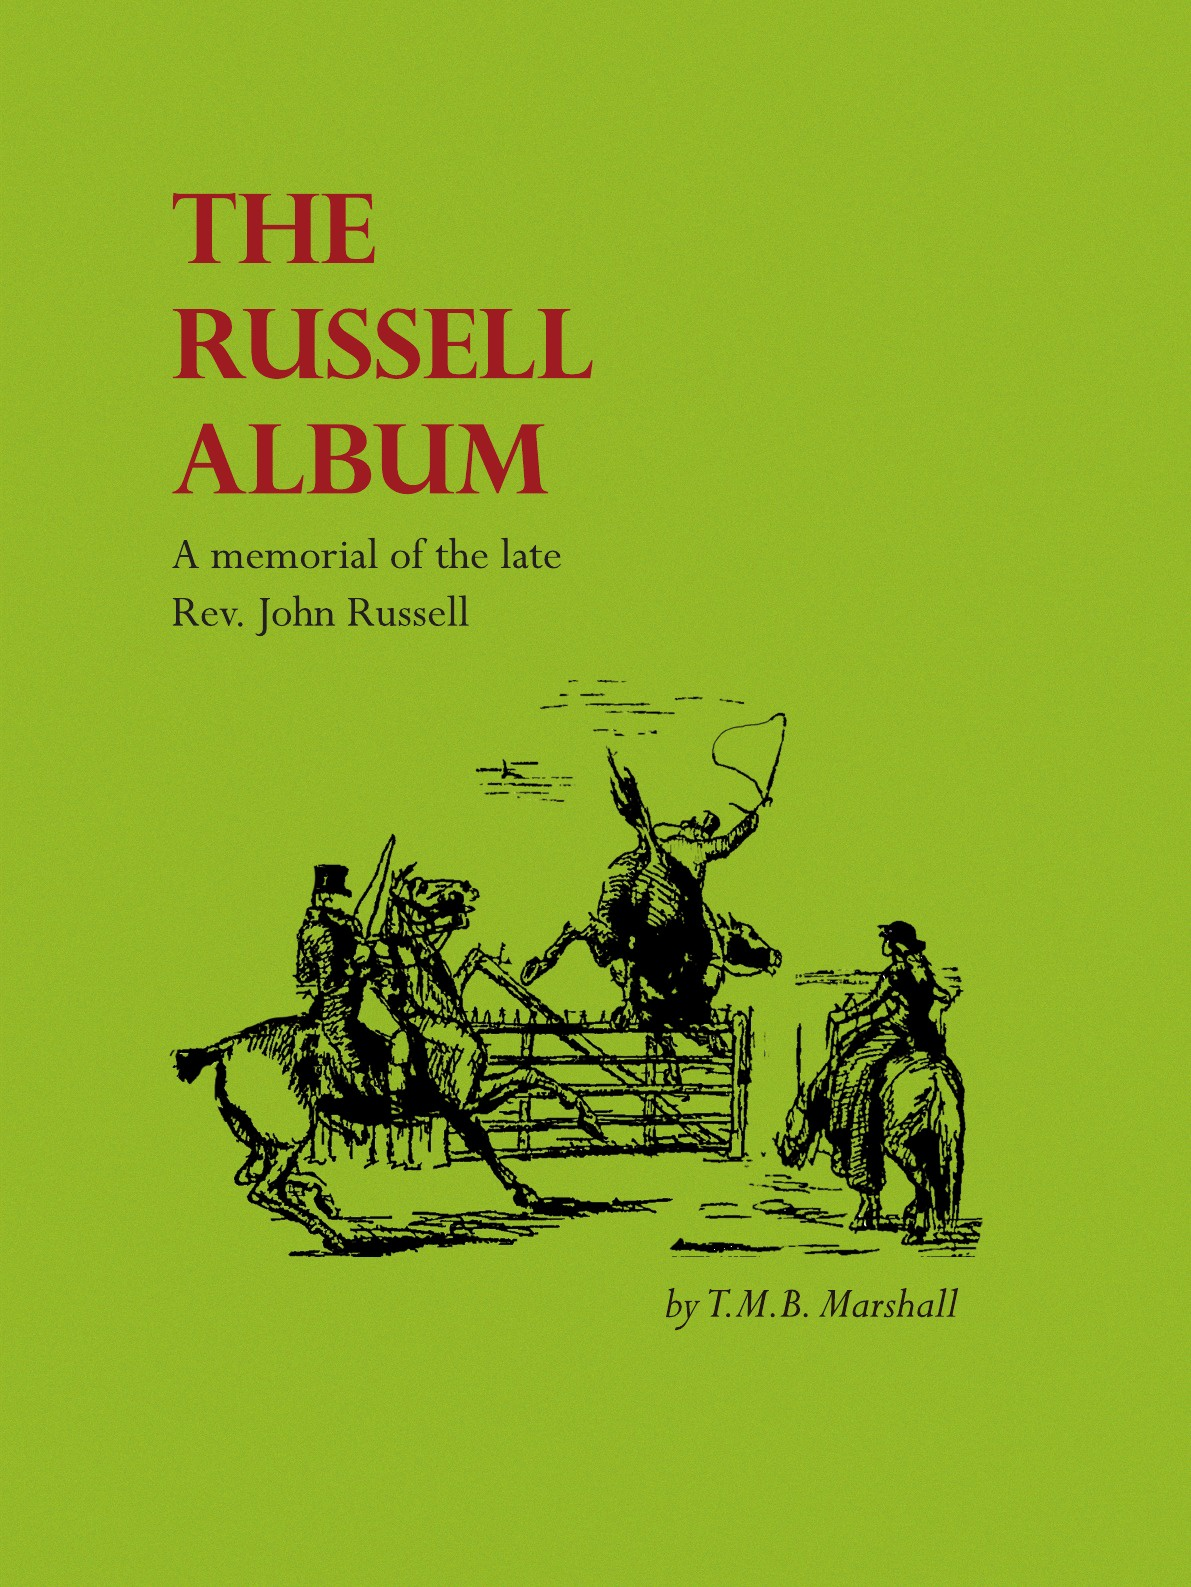 T.M.B. Marshall The Russell Album burton frederick russell the mission of poubalov